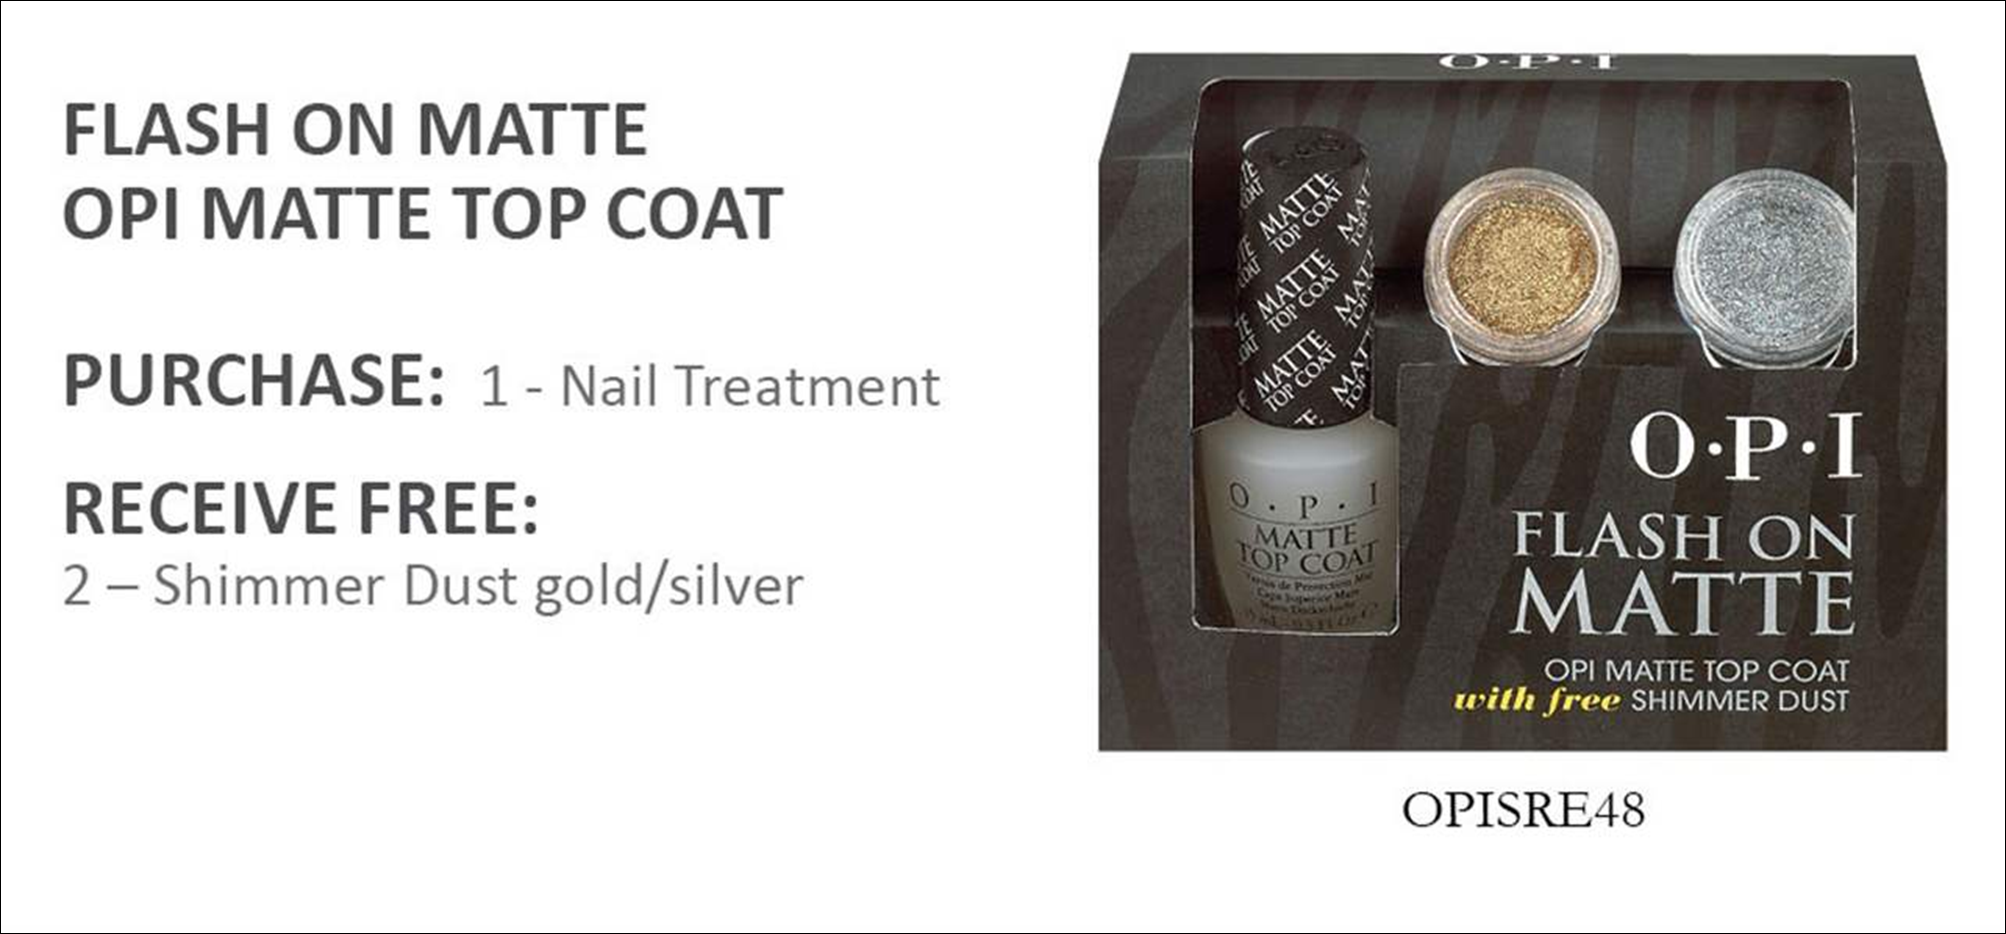 OPI Matte Top Coat and Matte GelColor Top Coat